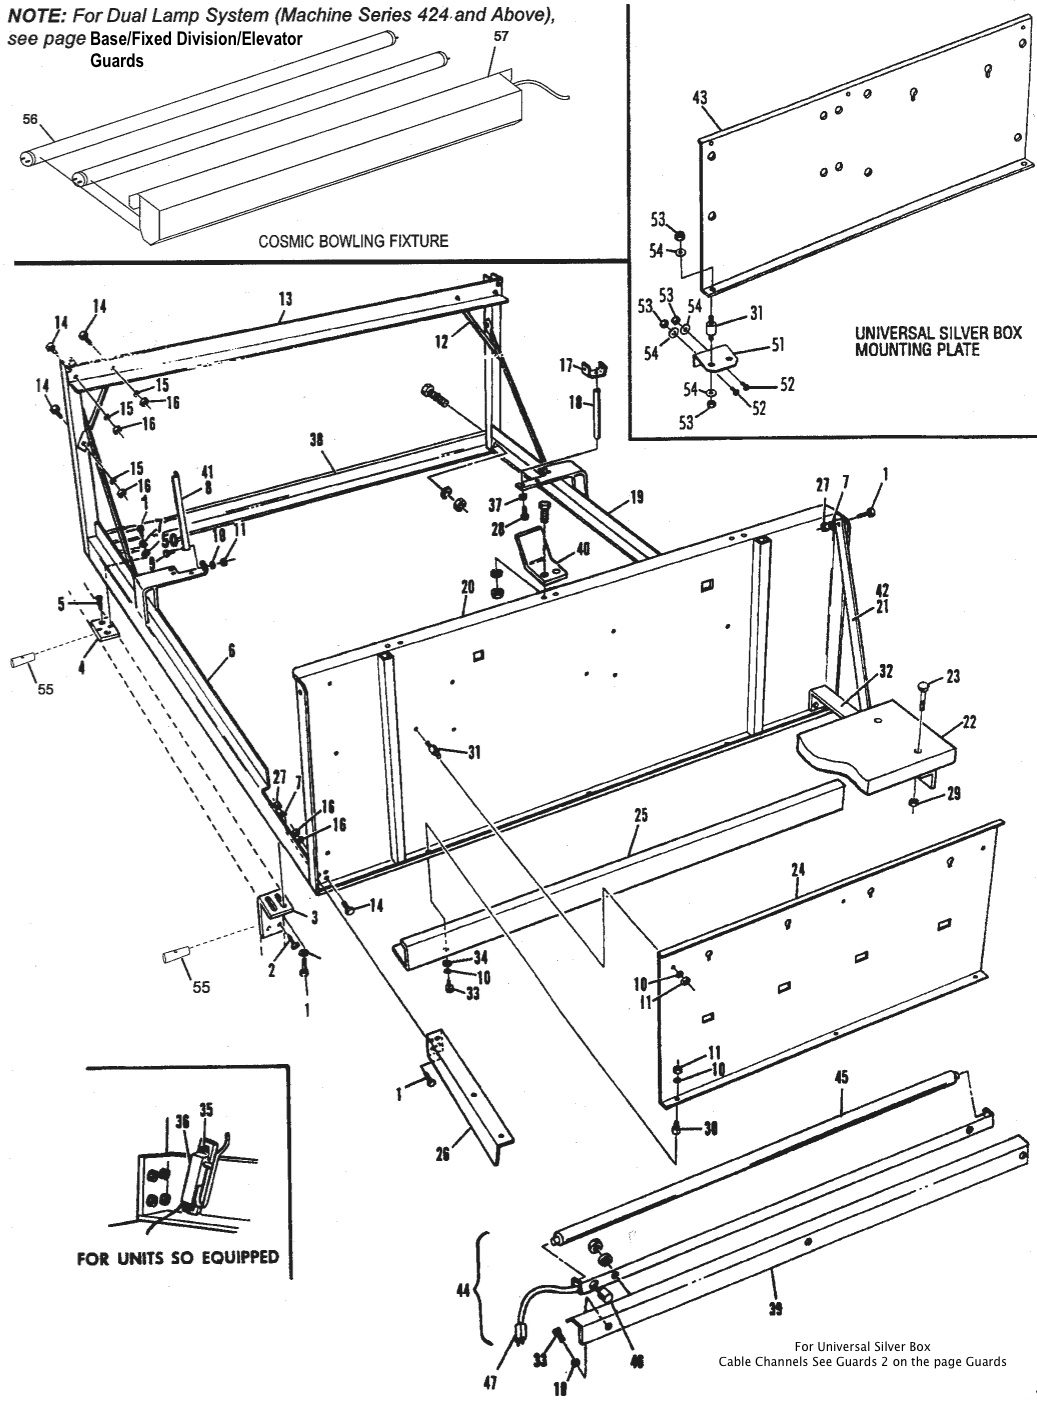 Frame Assembly (GS-96 and Below)